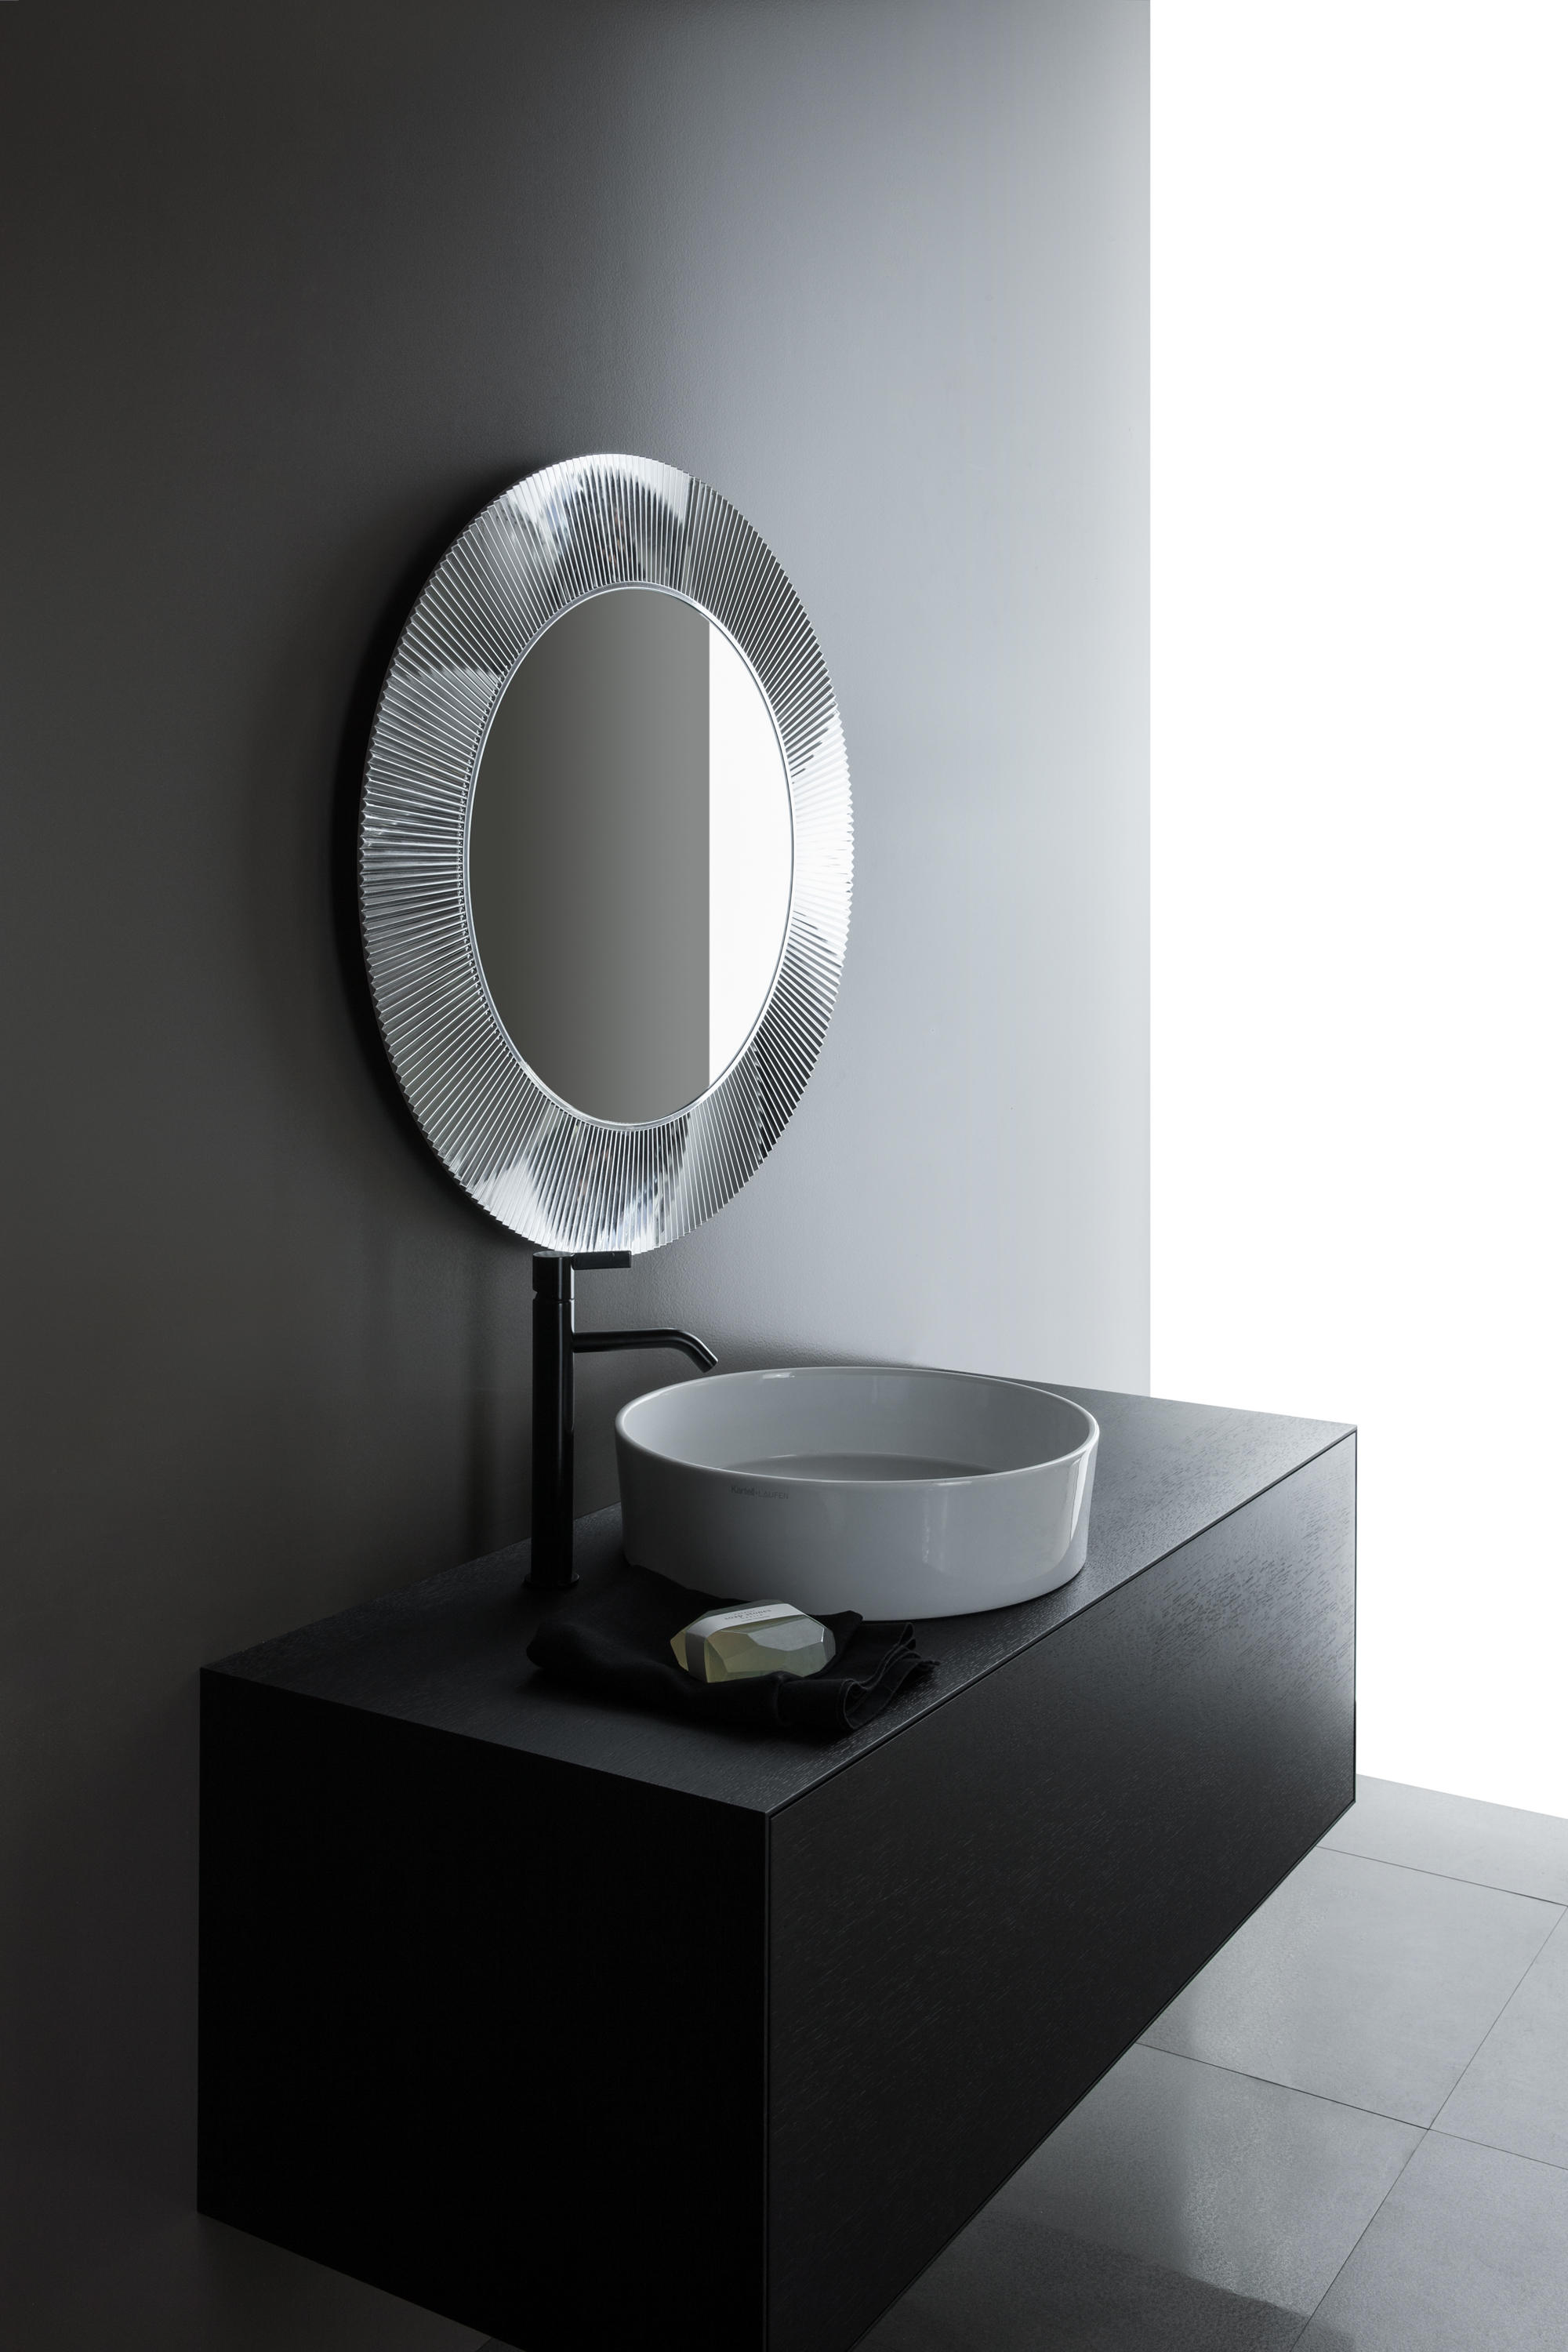 kartell by laufen freestanding washbasin wash basins. Black Bedroom Furniture Sets. Home Design Ideas